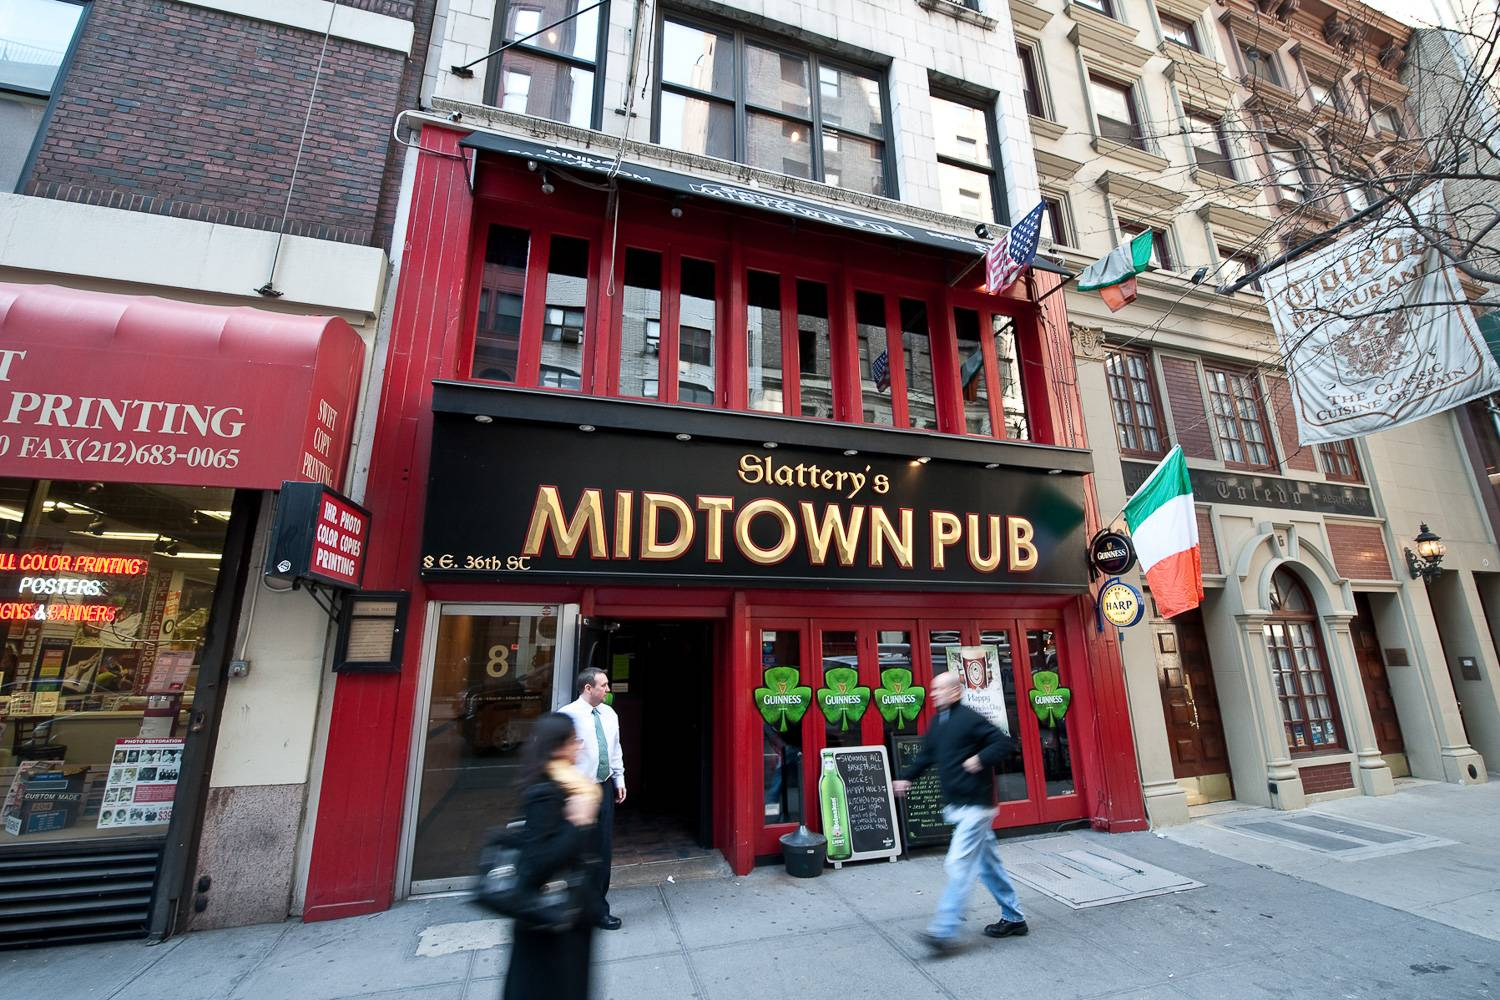 Image of Irish pub in Midtown Manhattan decorated with shamrocks for St. Patrick's Day